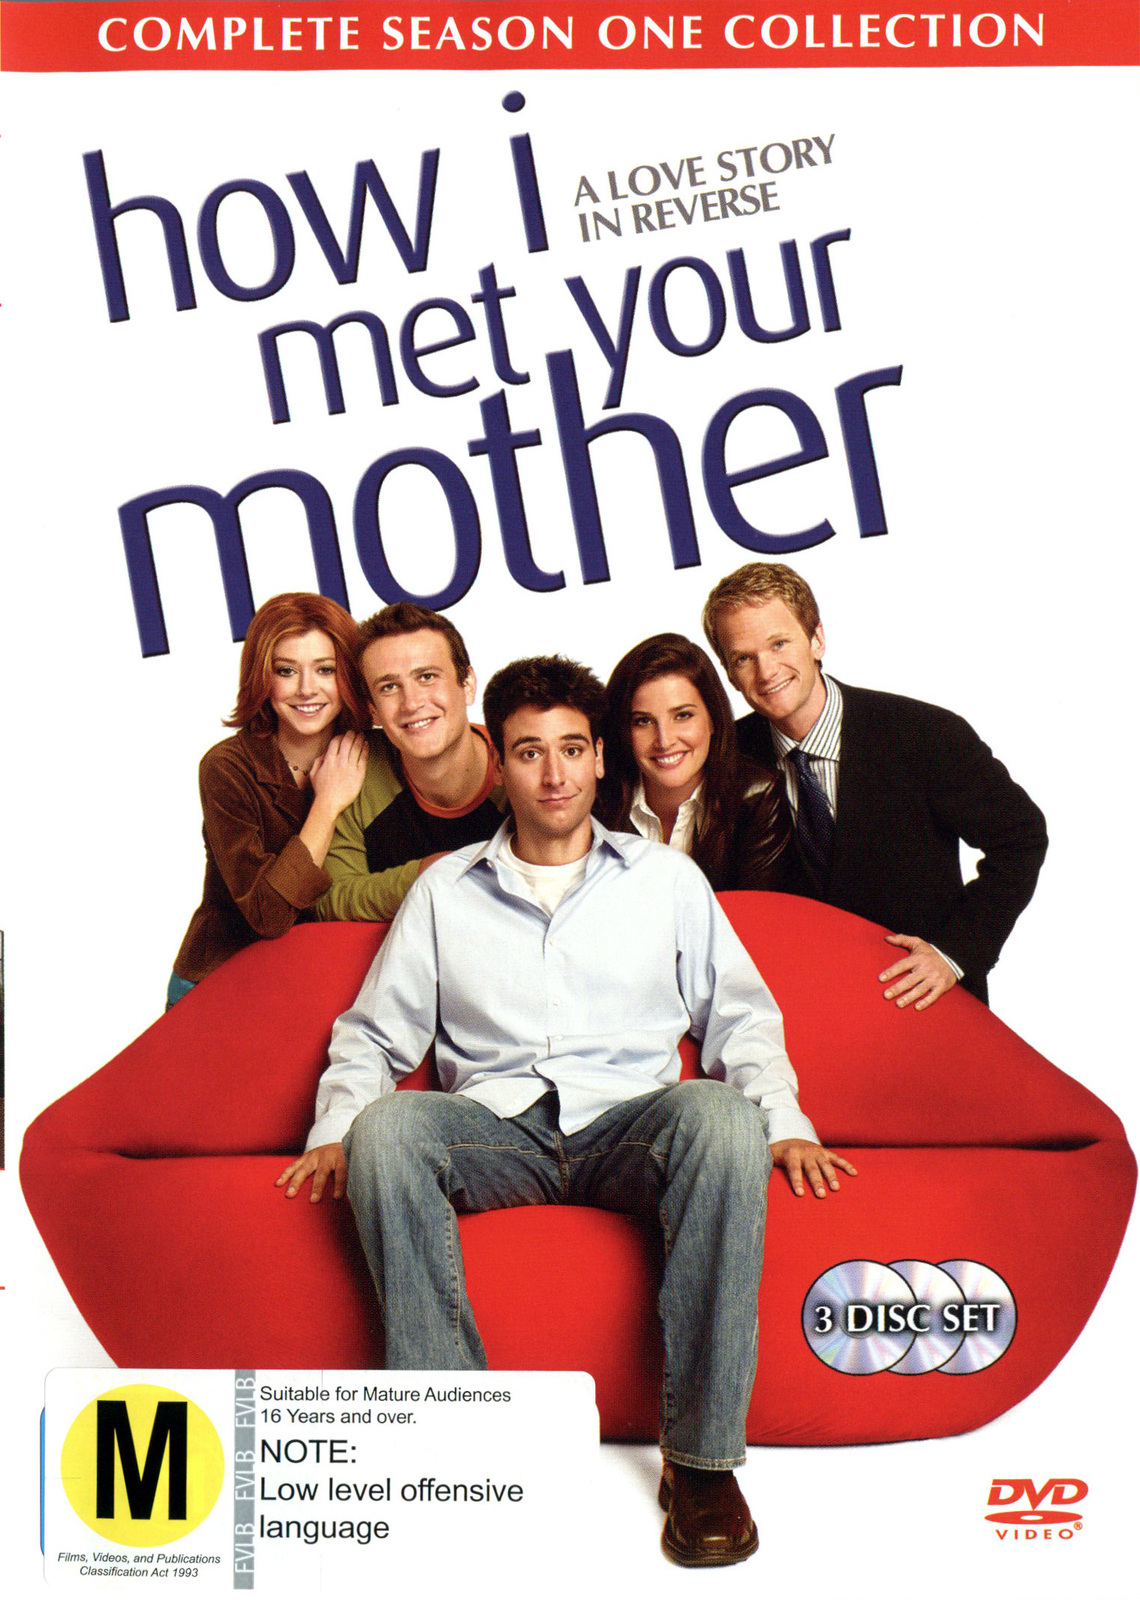 How I Met Your Mother - Season 1 (3 Disc Set) on DVD image